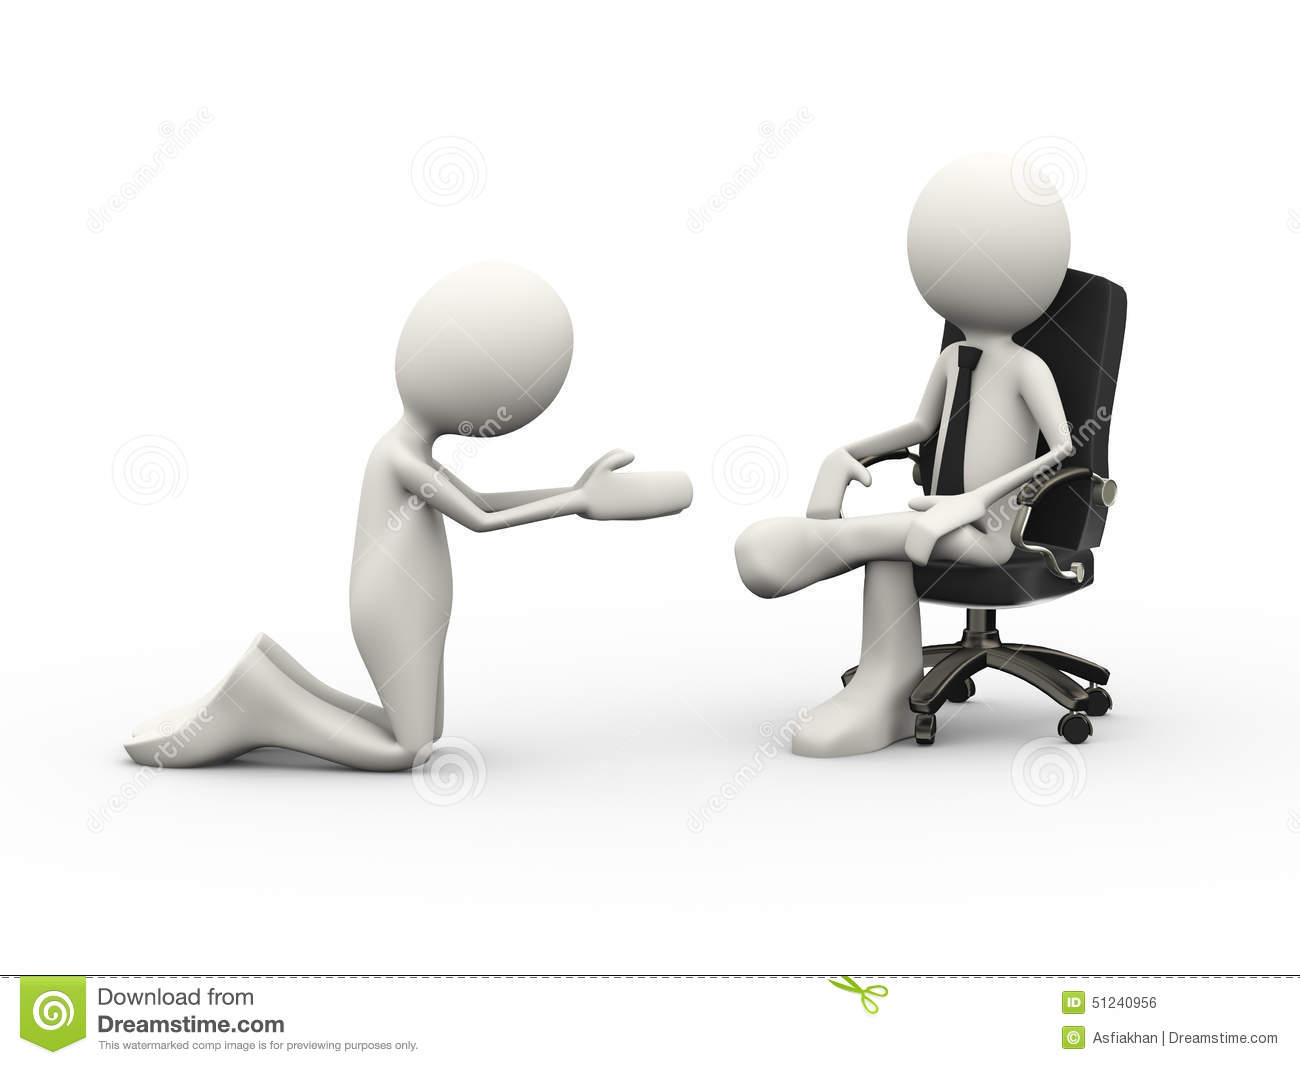 kneeling chair design plans dolphin massage 3d man begging to seated boss on stock illustration - image: 51240956